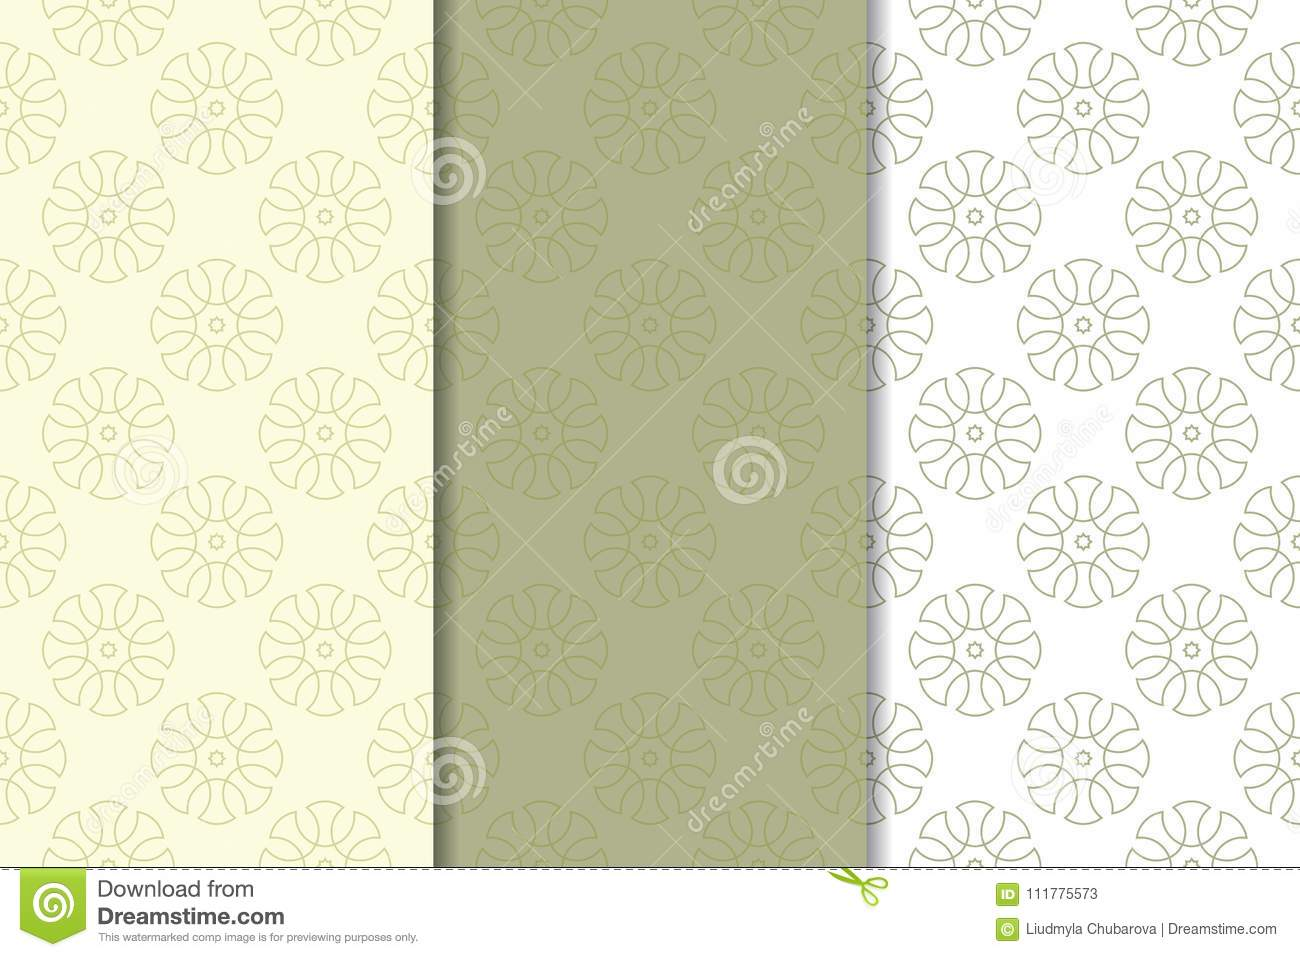 Olive green and white geometric ornaments. Set of seamless patterns